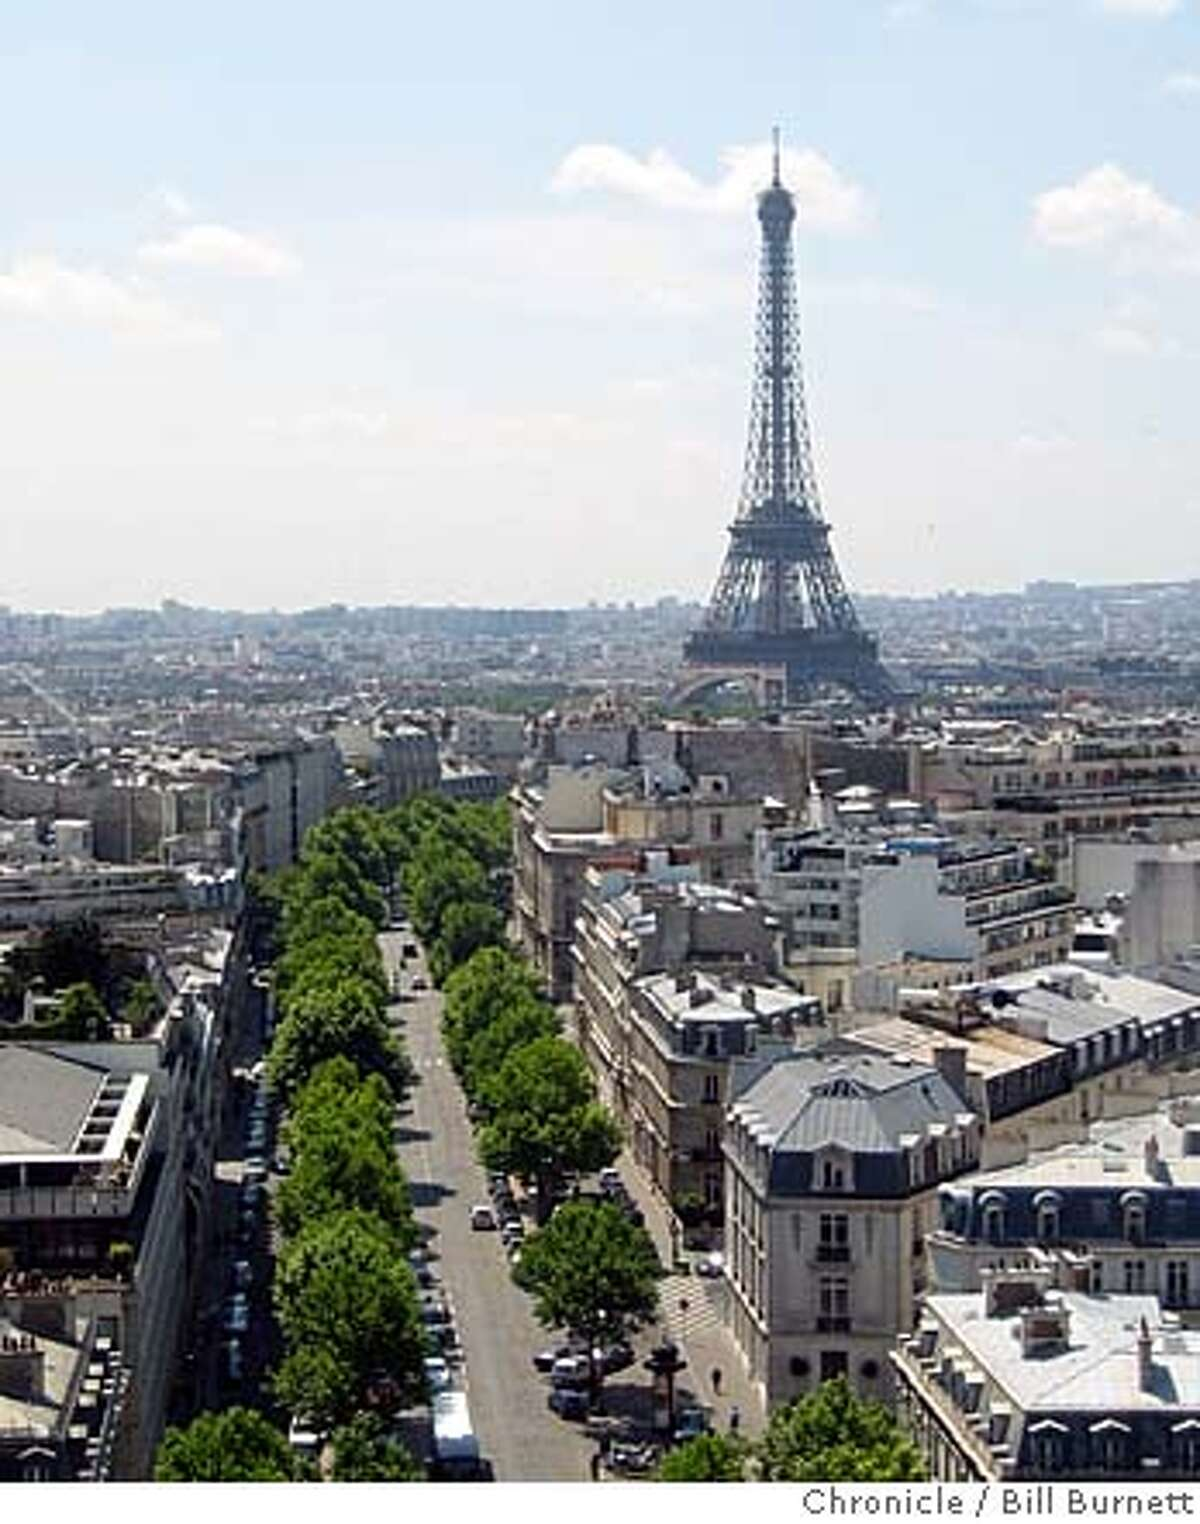 ###Live Caption:Eiffel Tower photographed from top of Arc de Triomphe, Paris. To go with Real Estate story on fractional ownership in Paris.###Caption History:Eiffel Tower photographed from top of Arc de Triomphe, Paris. To go with Real Estate story on fractional ownership in Paris.###Notes:###Special Instructions: